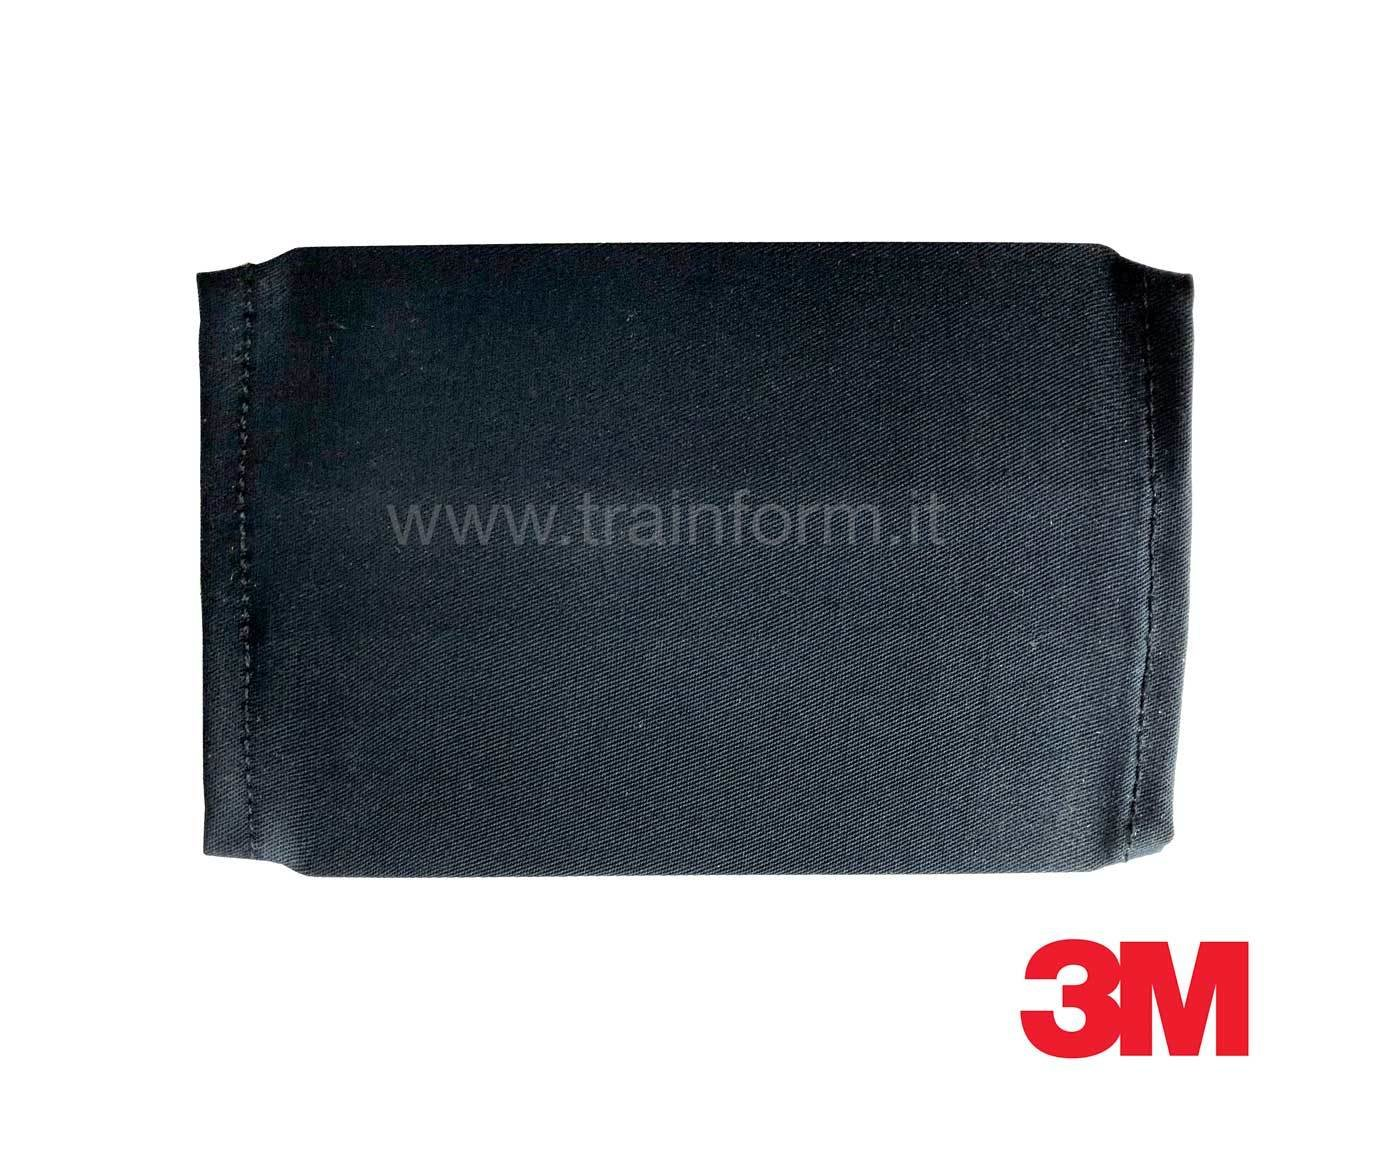 Camicia 3M Cotton Squeegee Sleeve